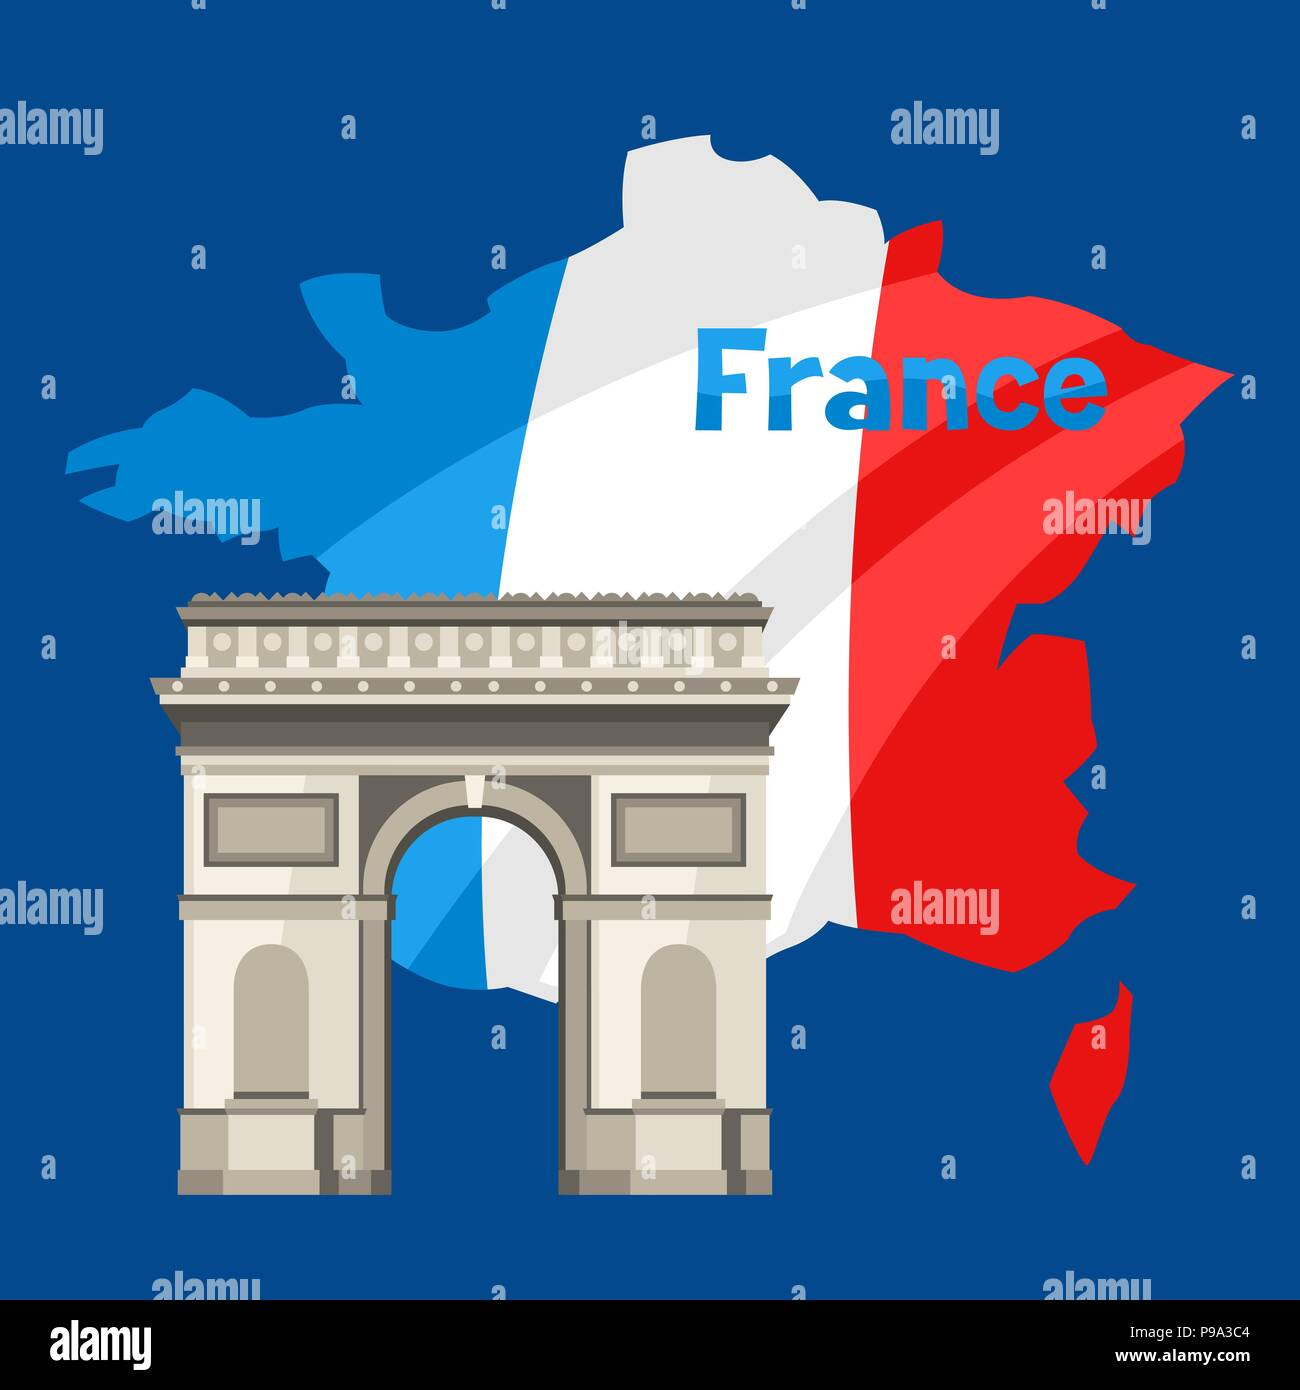 Triumphal Arch on map of France. - Stock Vector